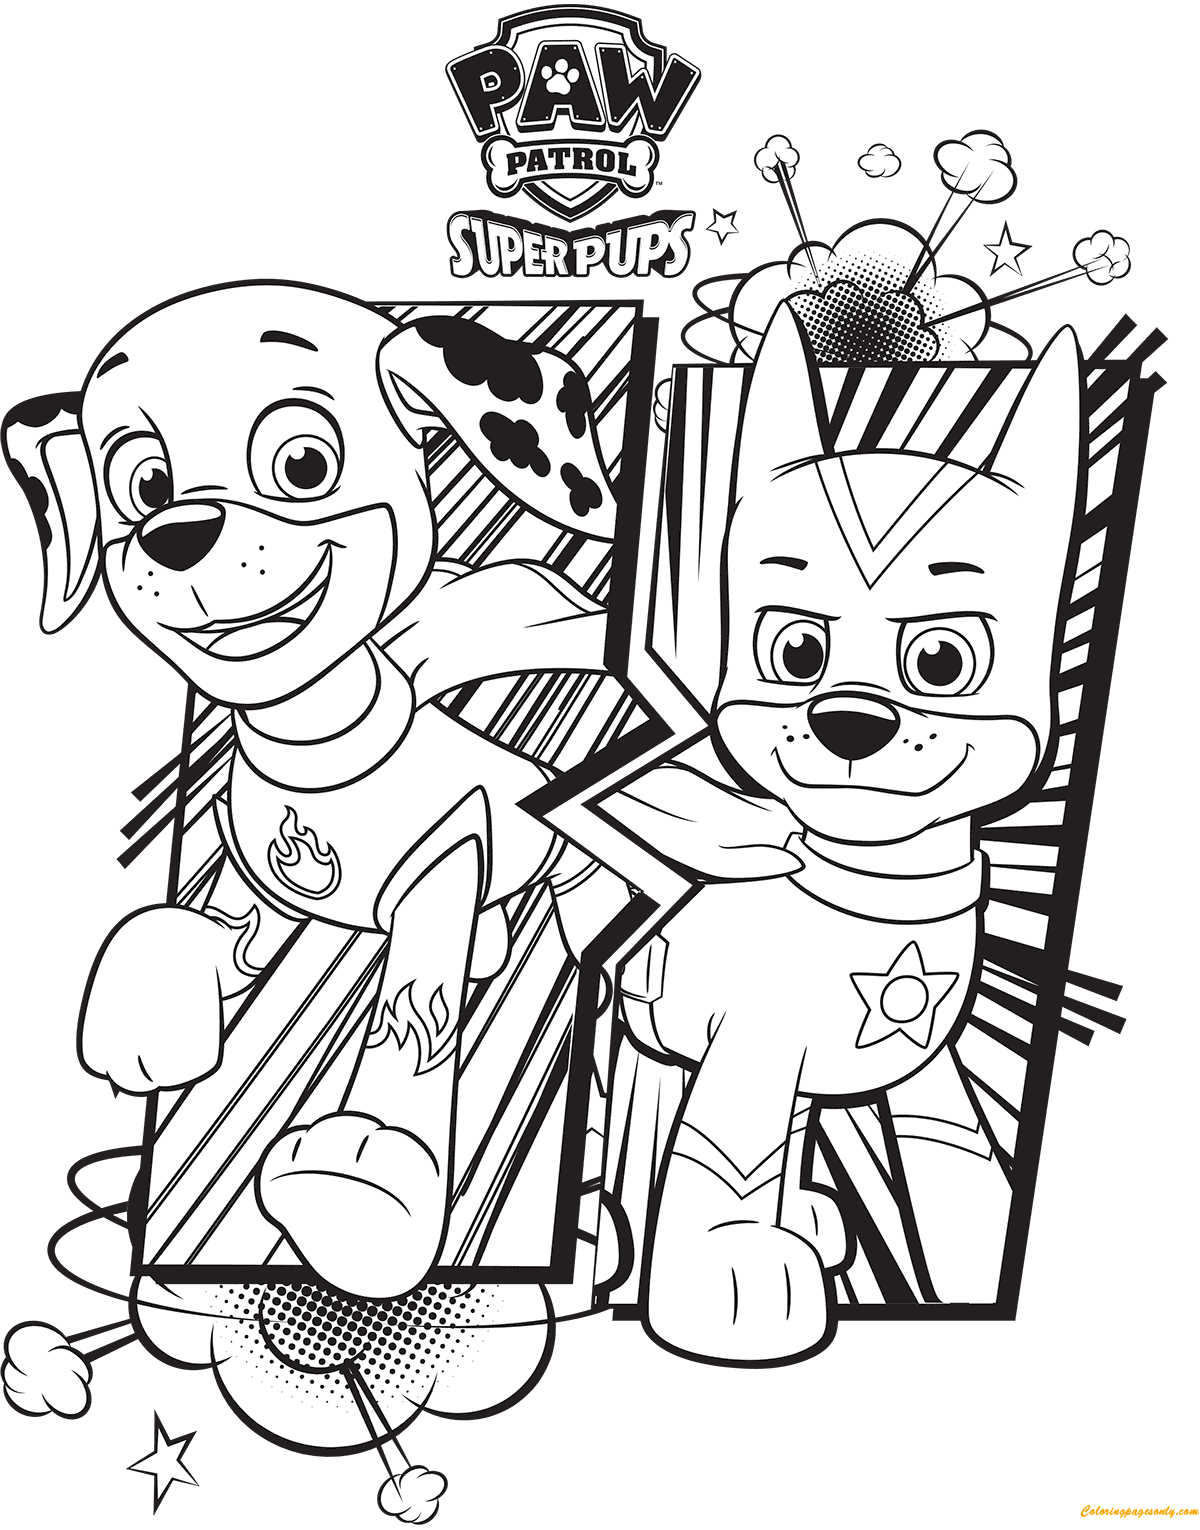 Chase Paw Patrol Drawing At Getdrawings Com Free For Personal Use